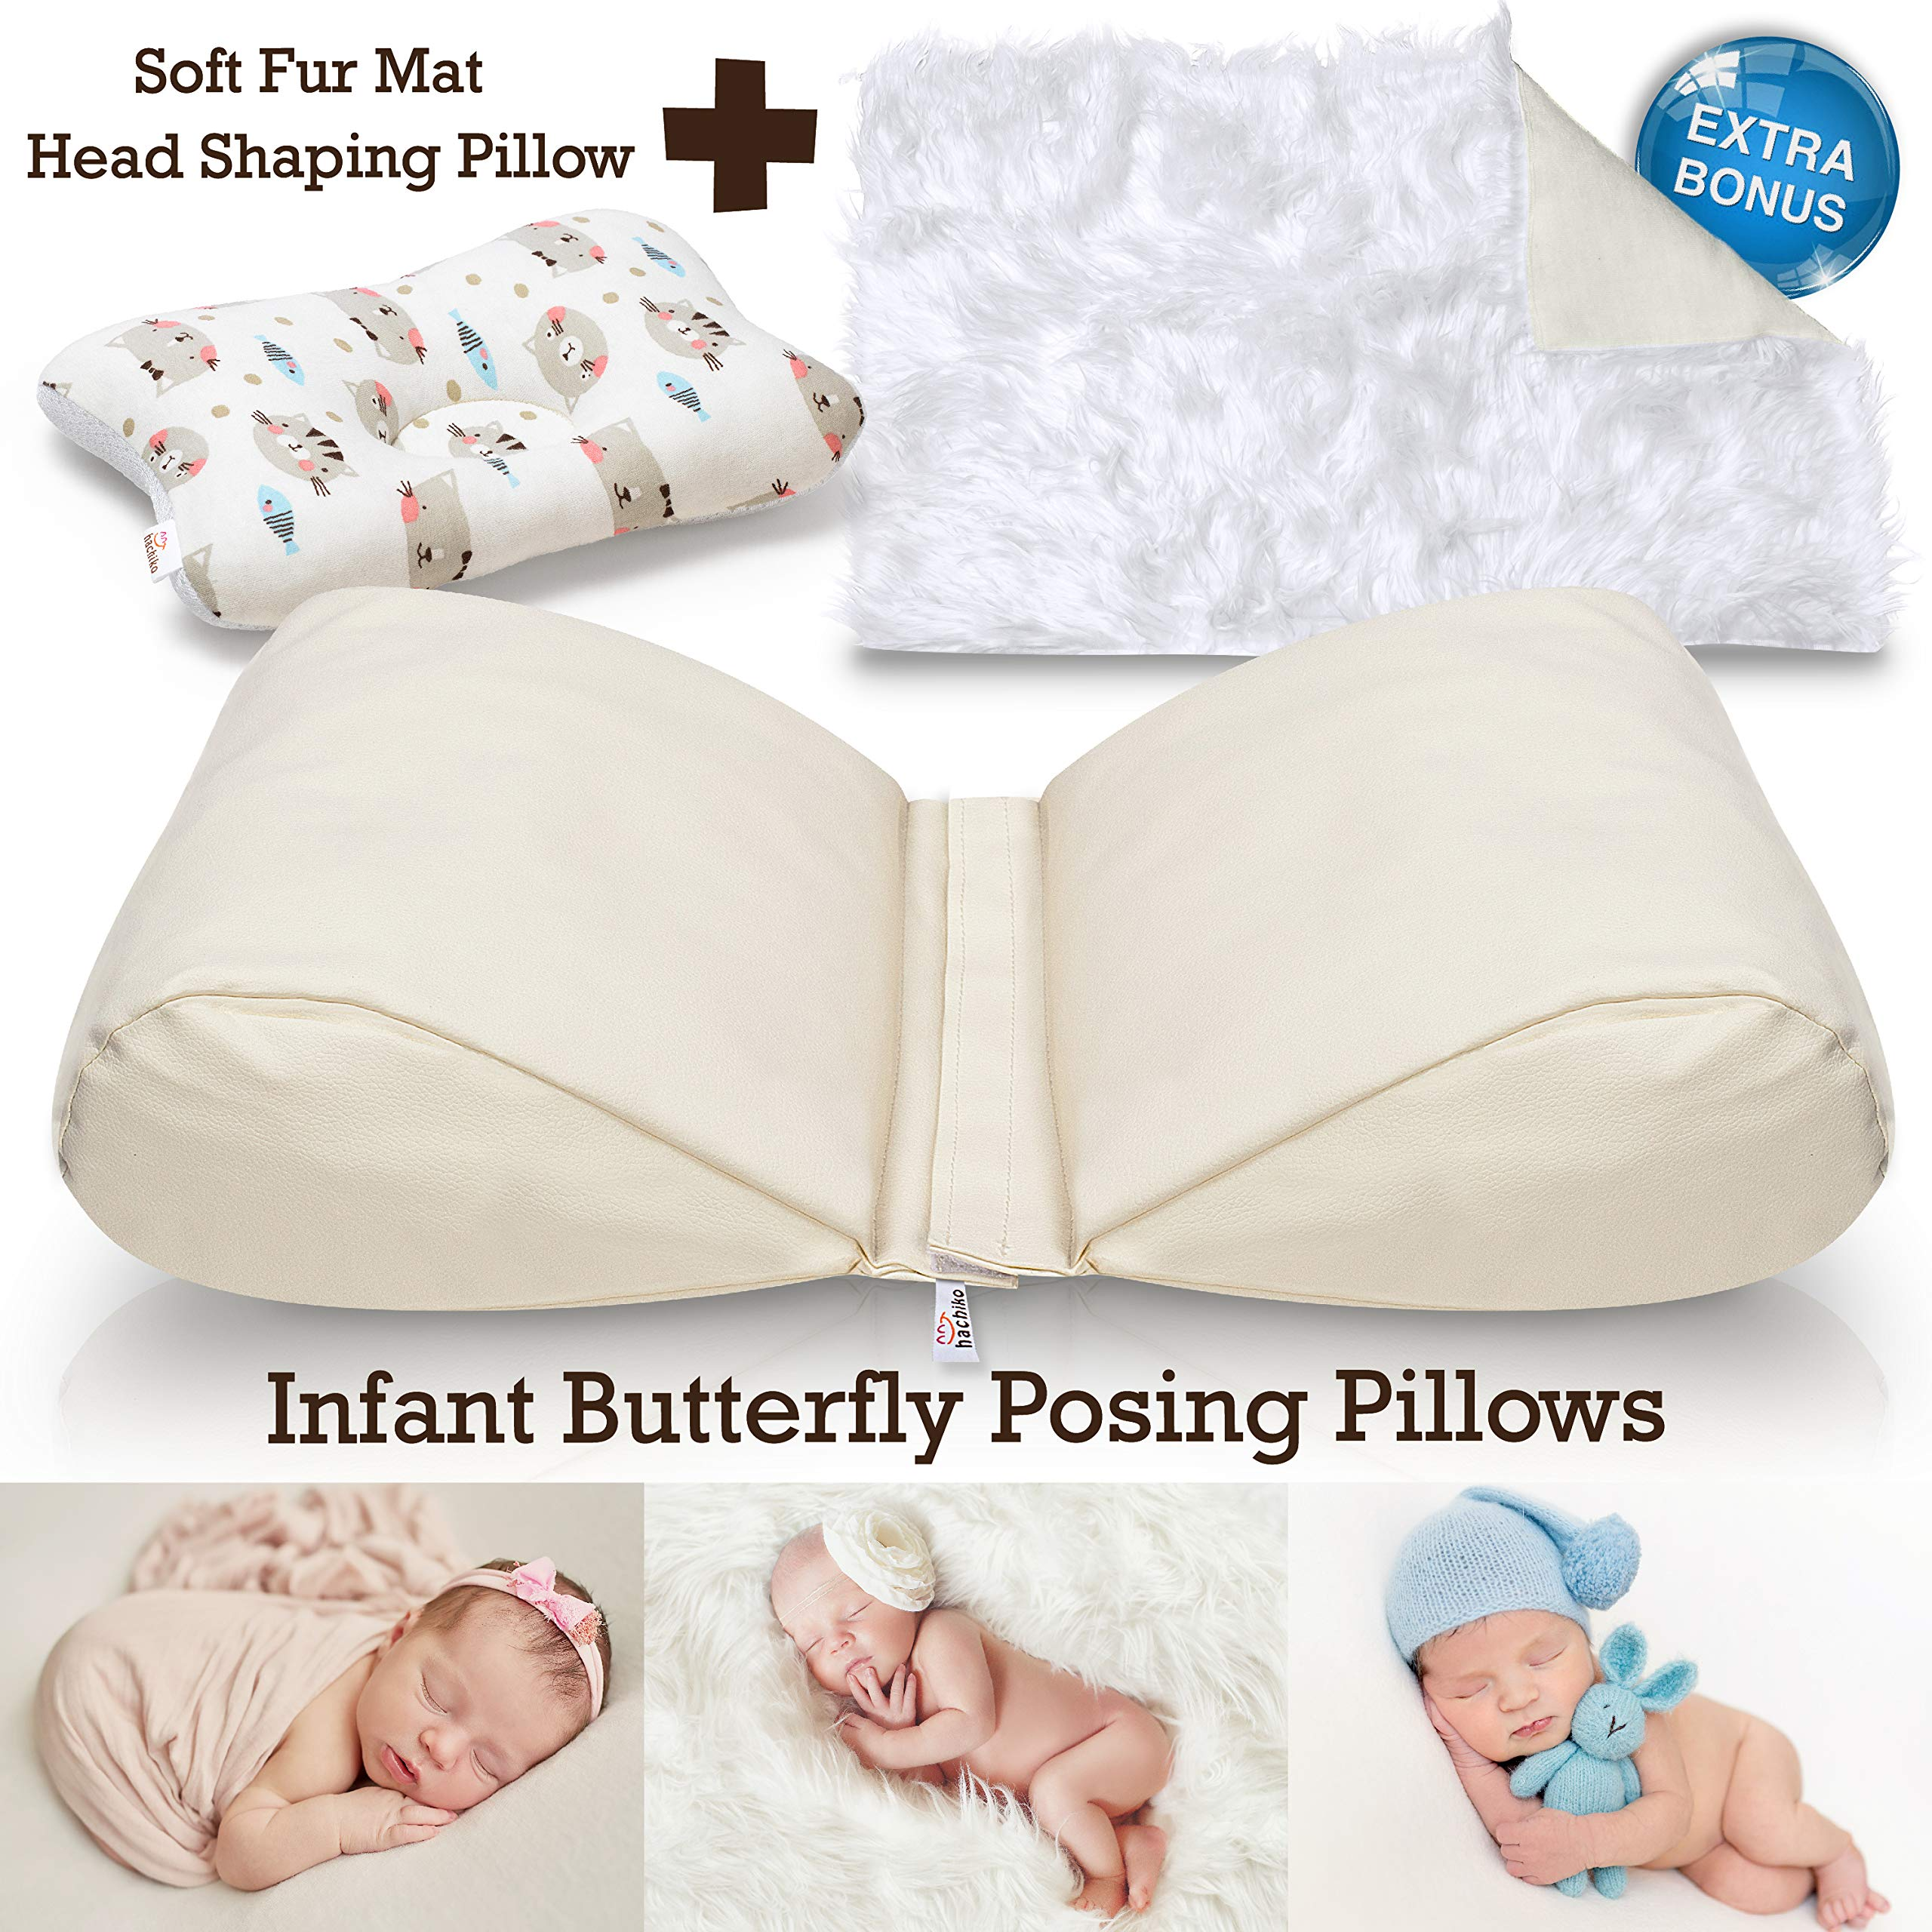 Newborn Butterfly Posing Pillow Photography Prop Plus Soft Faux Fur Background Blanket and Head Support - 2 Piece Detachable Cushion to Pose Your Baby for DIY or Professional Photo Shoot in Comfort by Hachiko